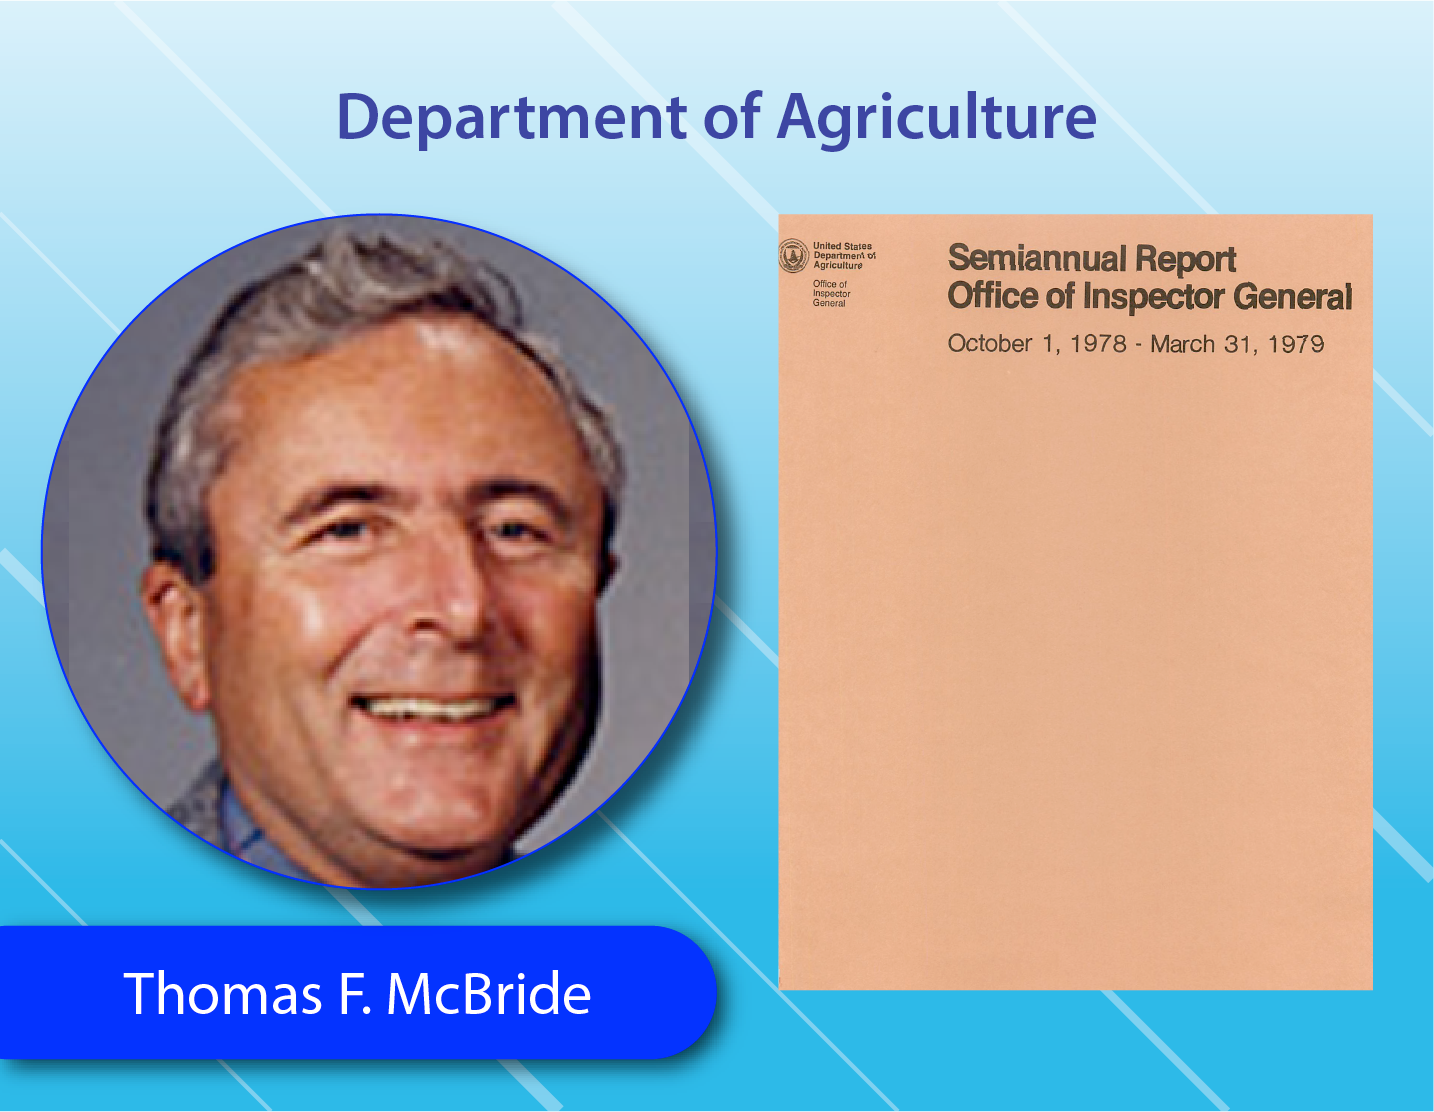 Department of Agriculture - Thomas R. McBride